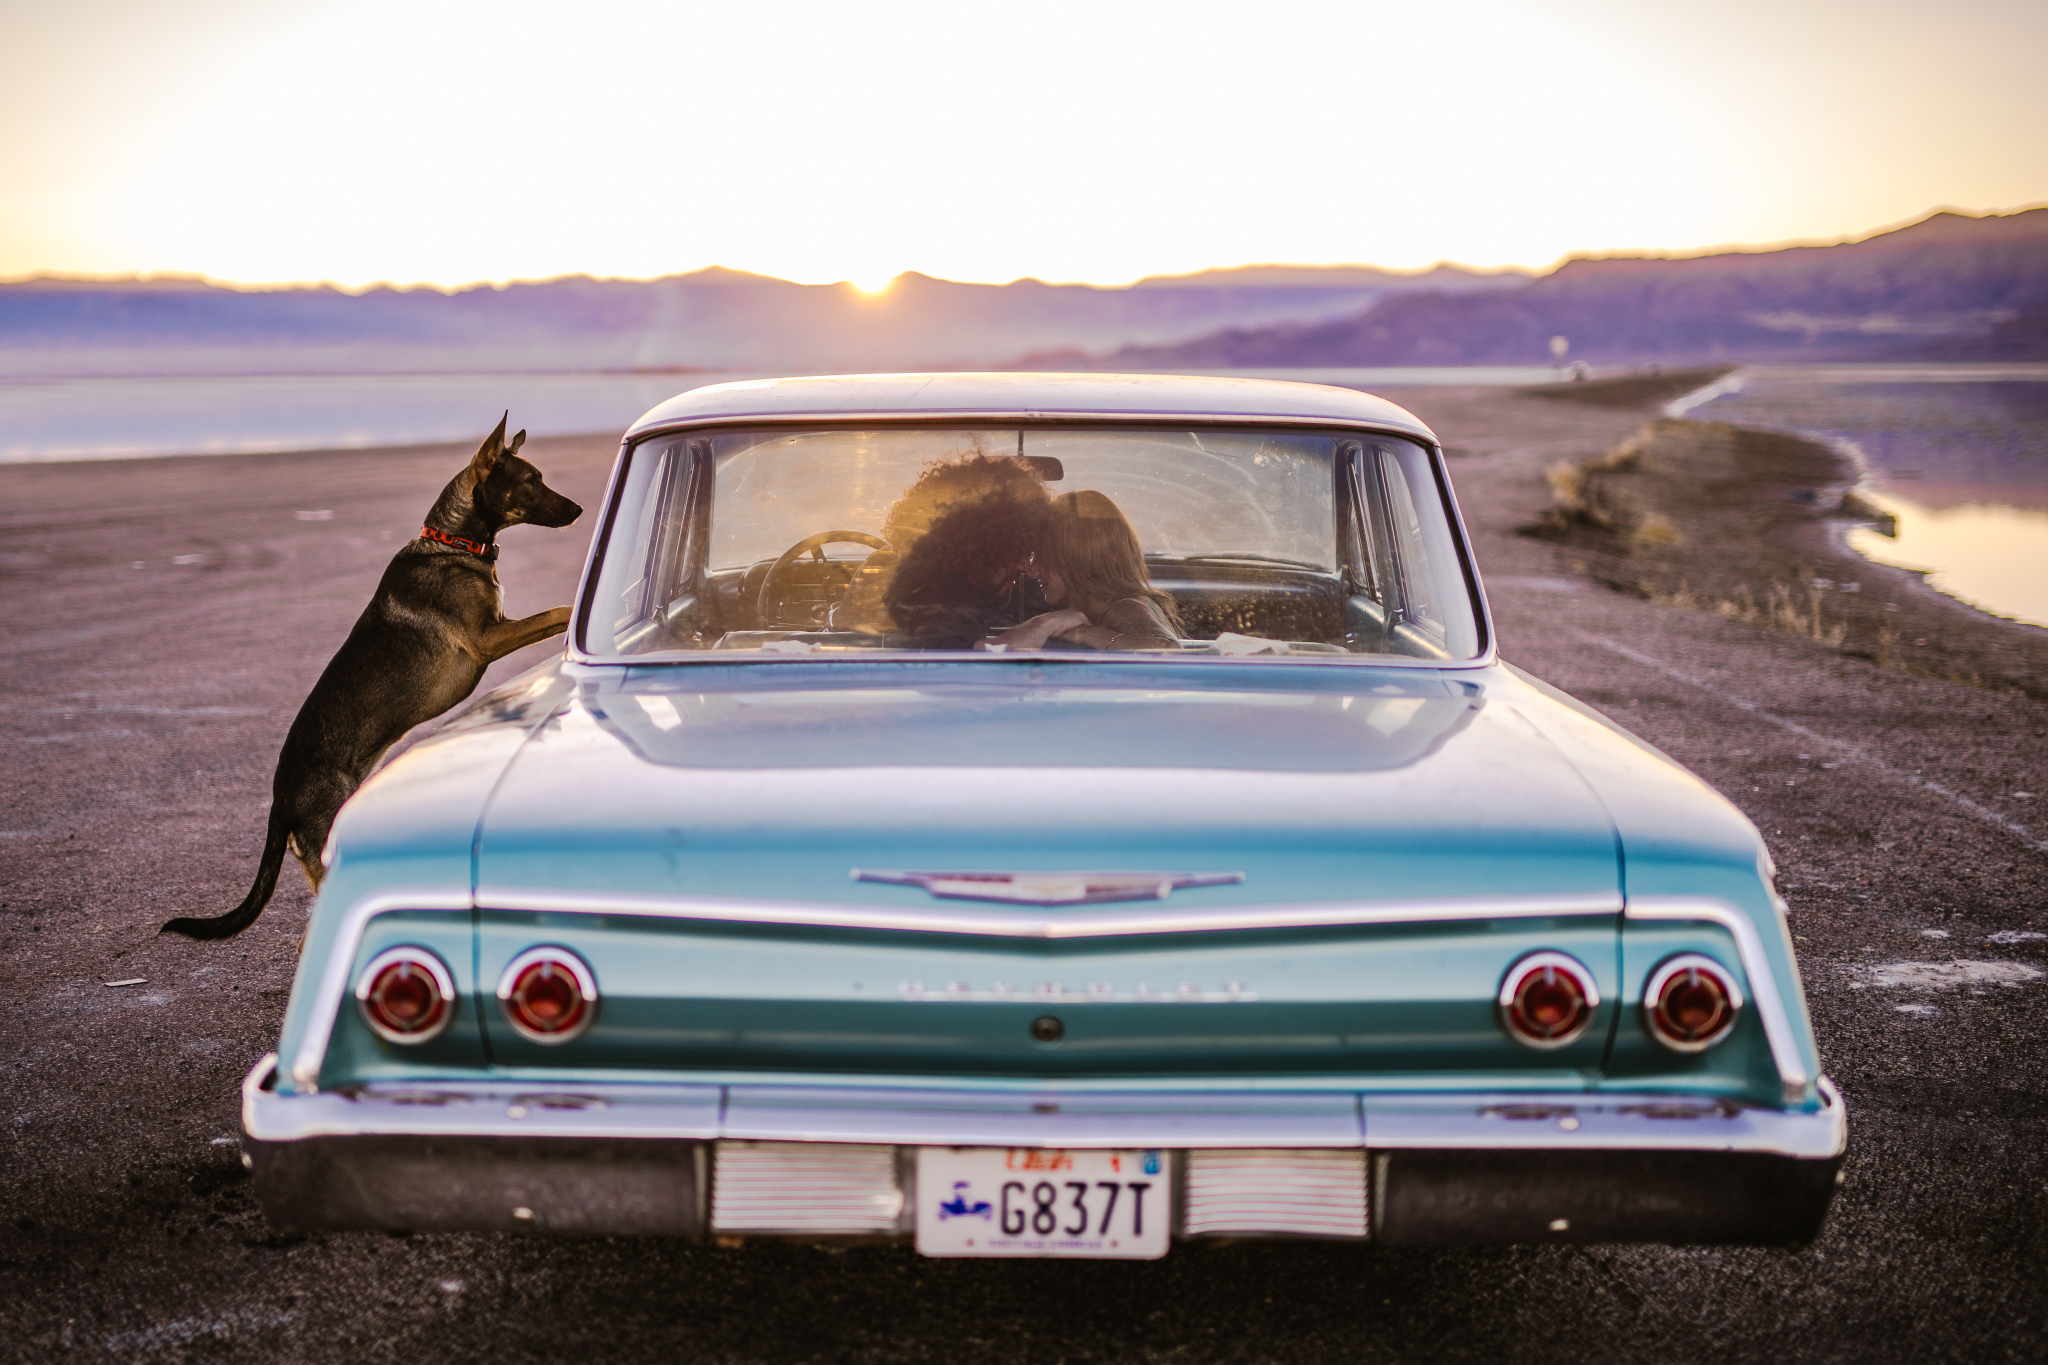 san diego wedding   photographer | couple in blue vintage car about to kiss and dog outside car   watching them